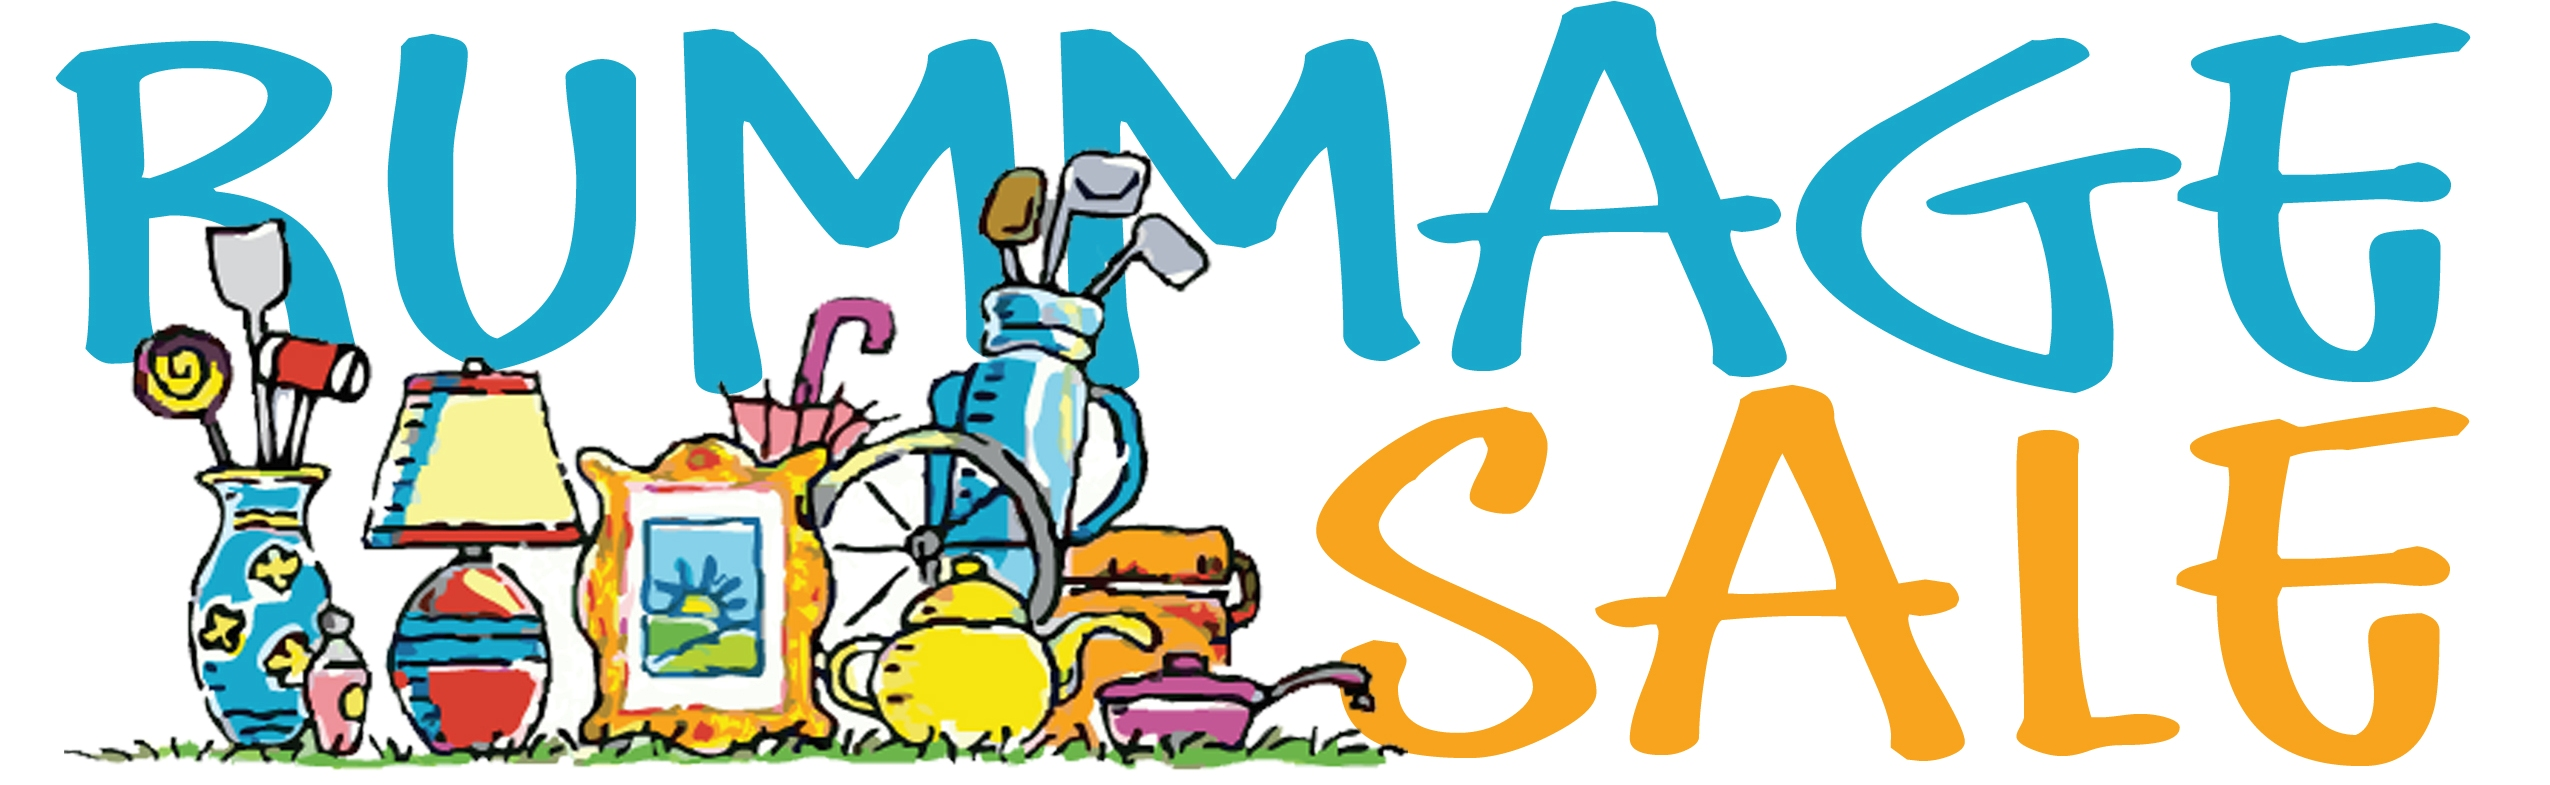 2550x785 Rummage Sale Clip Art Many Interesting Cliparts